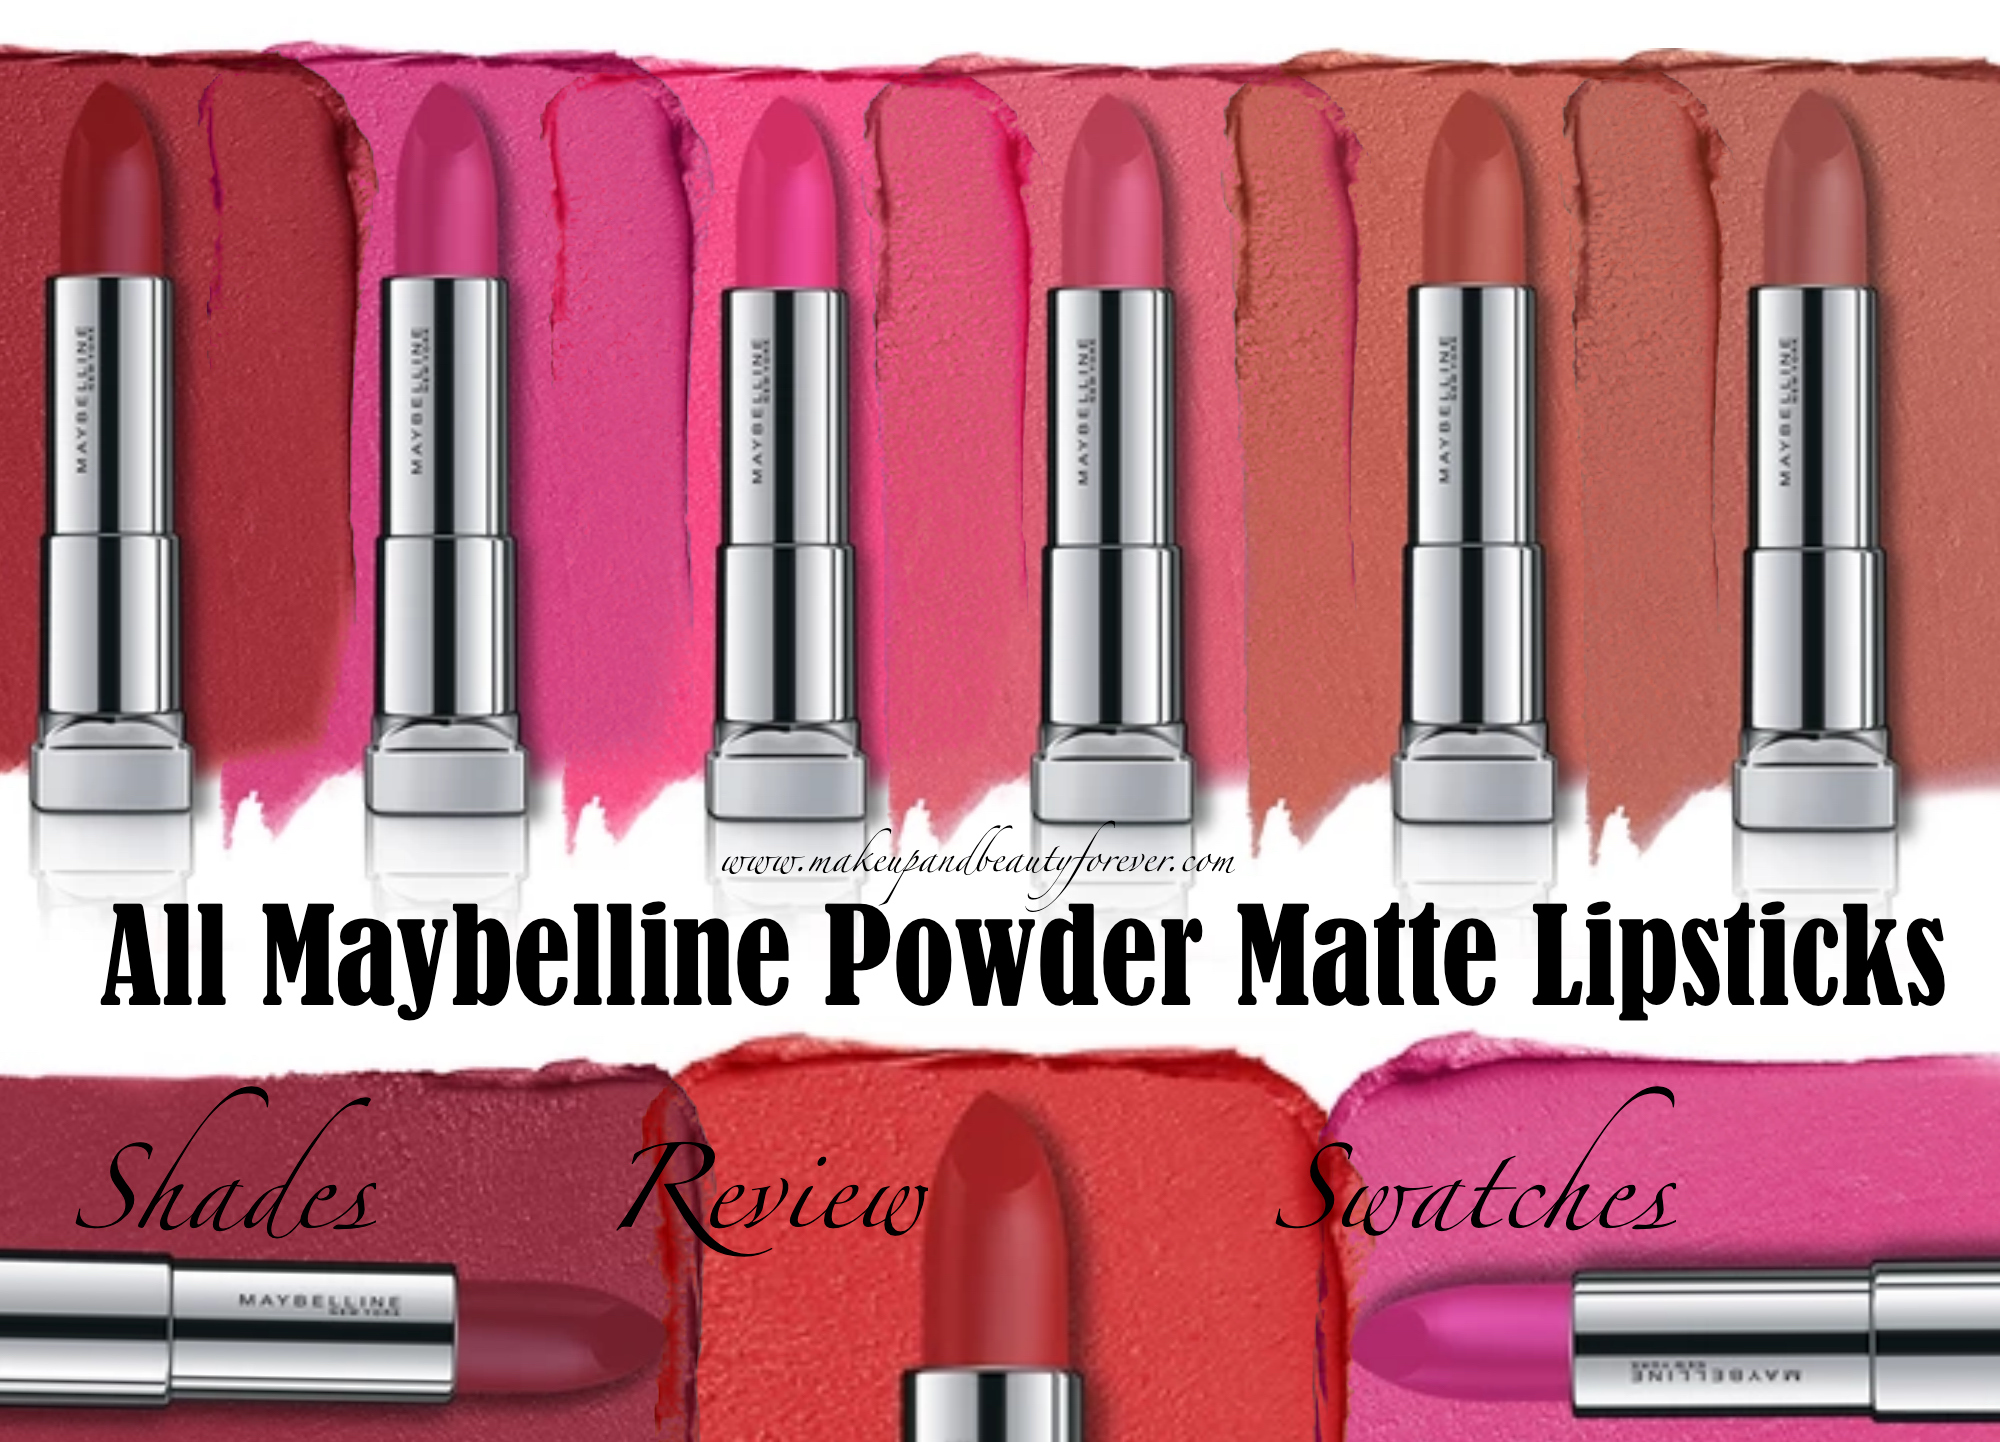 All Maybelline Powder Matte Lipsticks Shades Review Swatches Lipstik